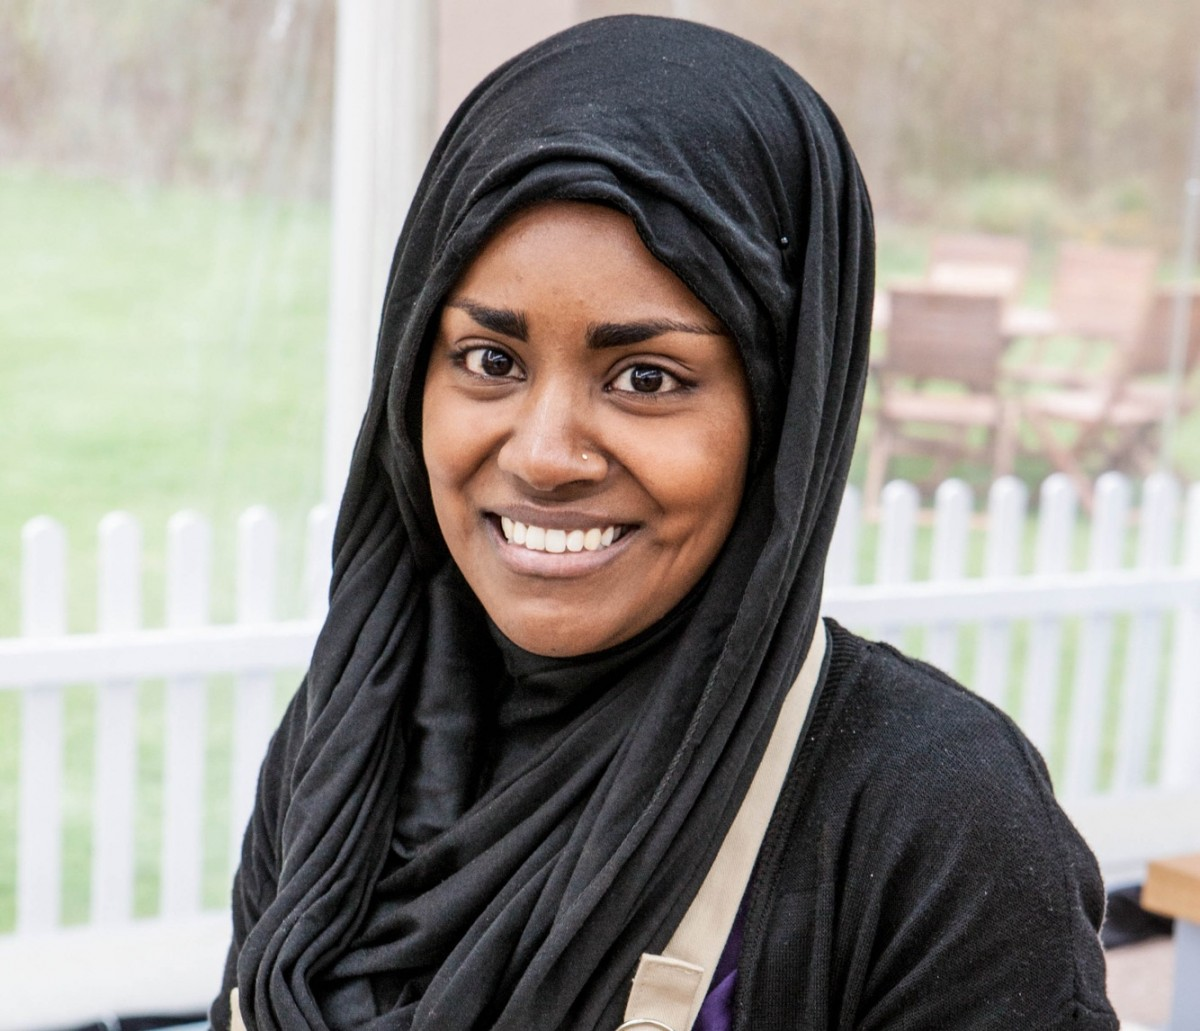 Nadiya, The Great British Bake Off